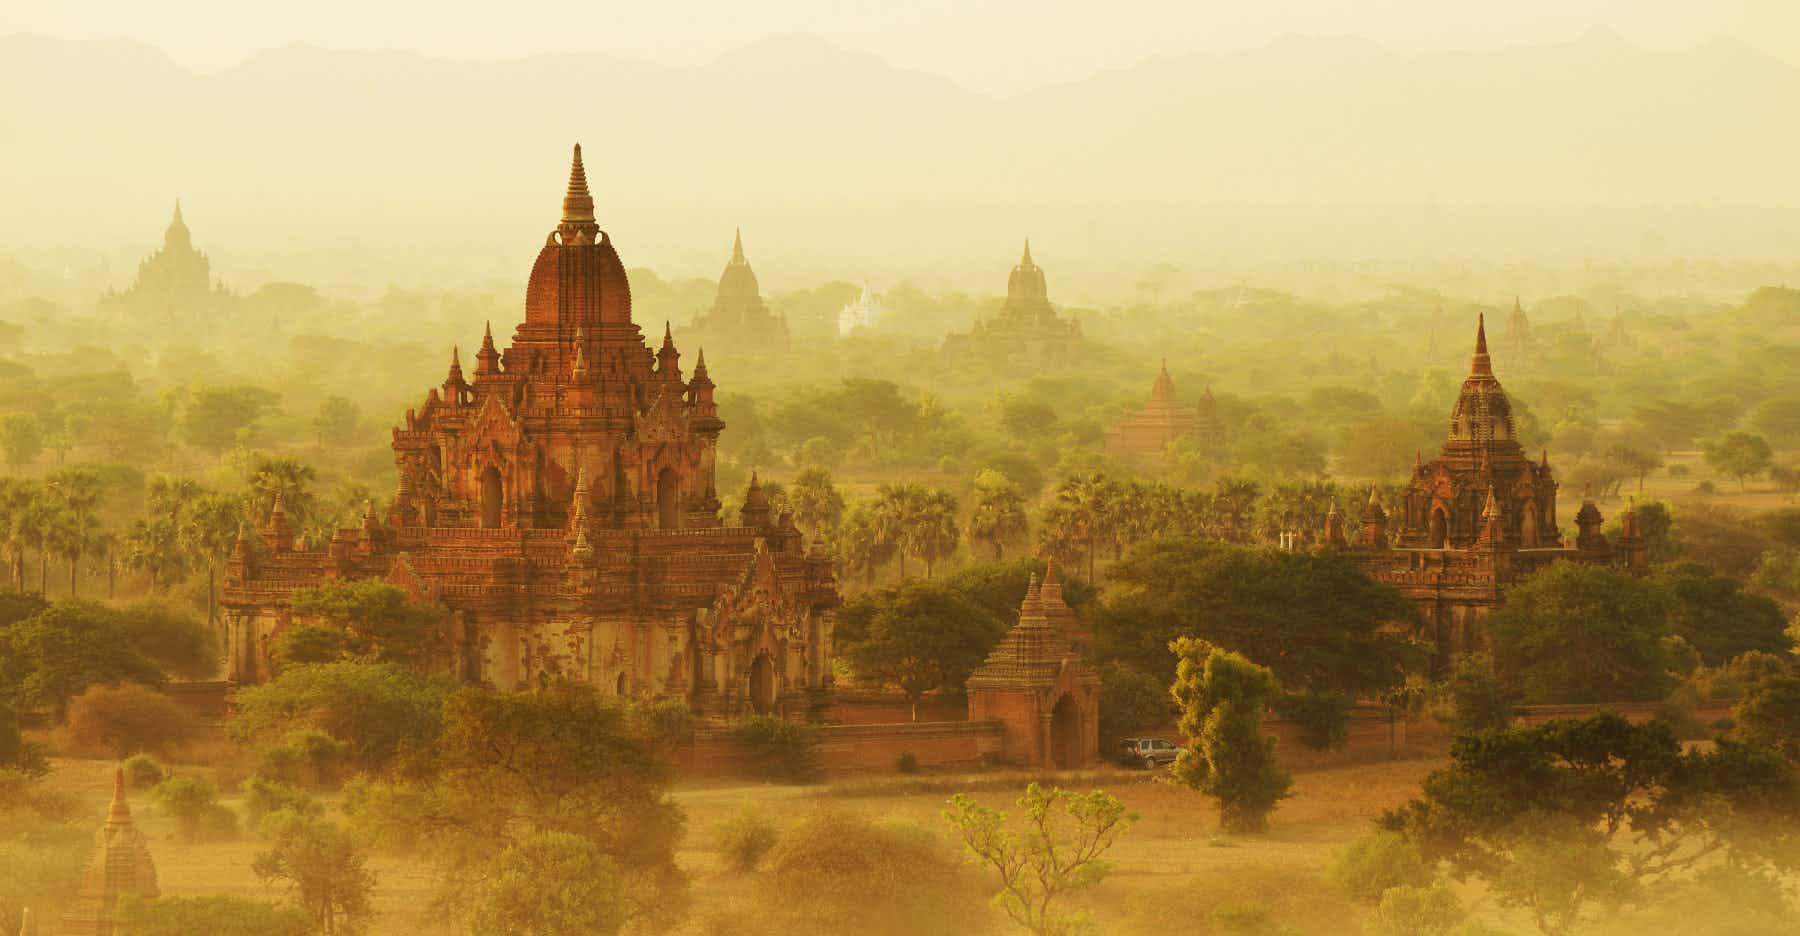 Myanmar and Cambodia team up to promote their spectacular ancient temples